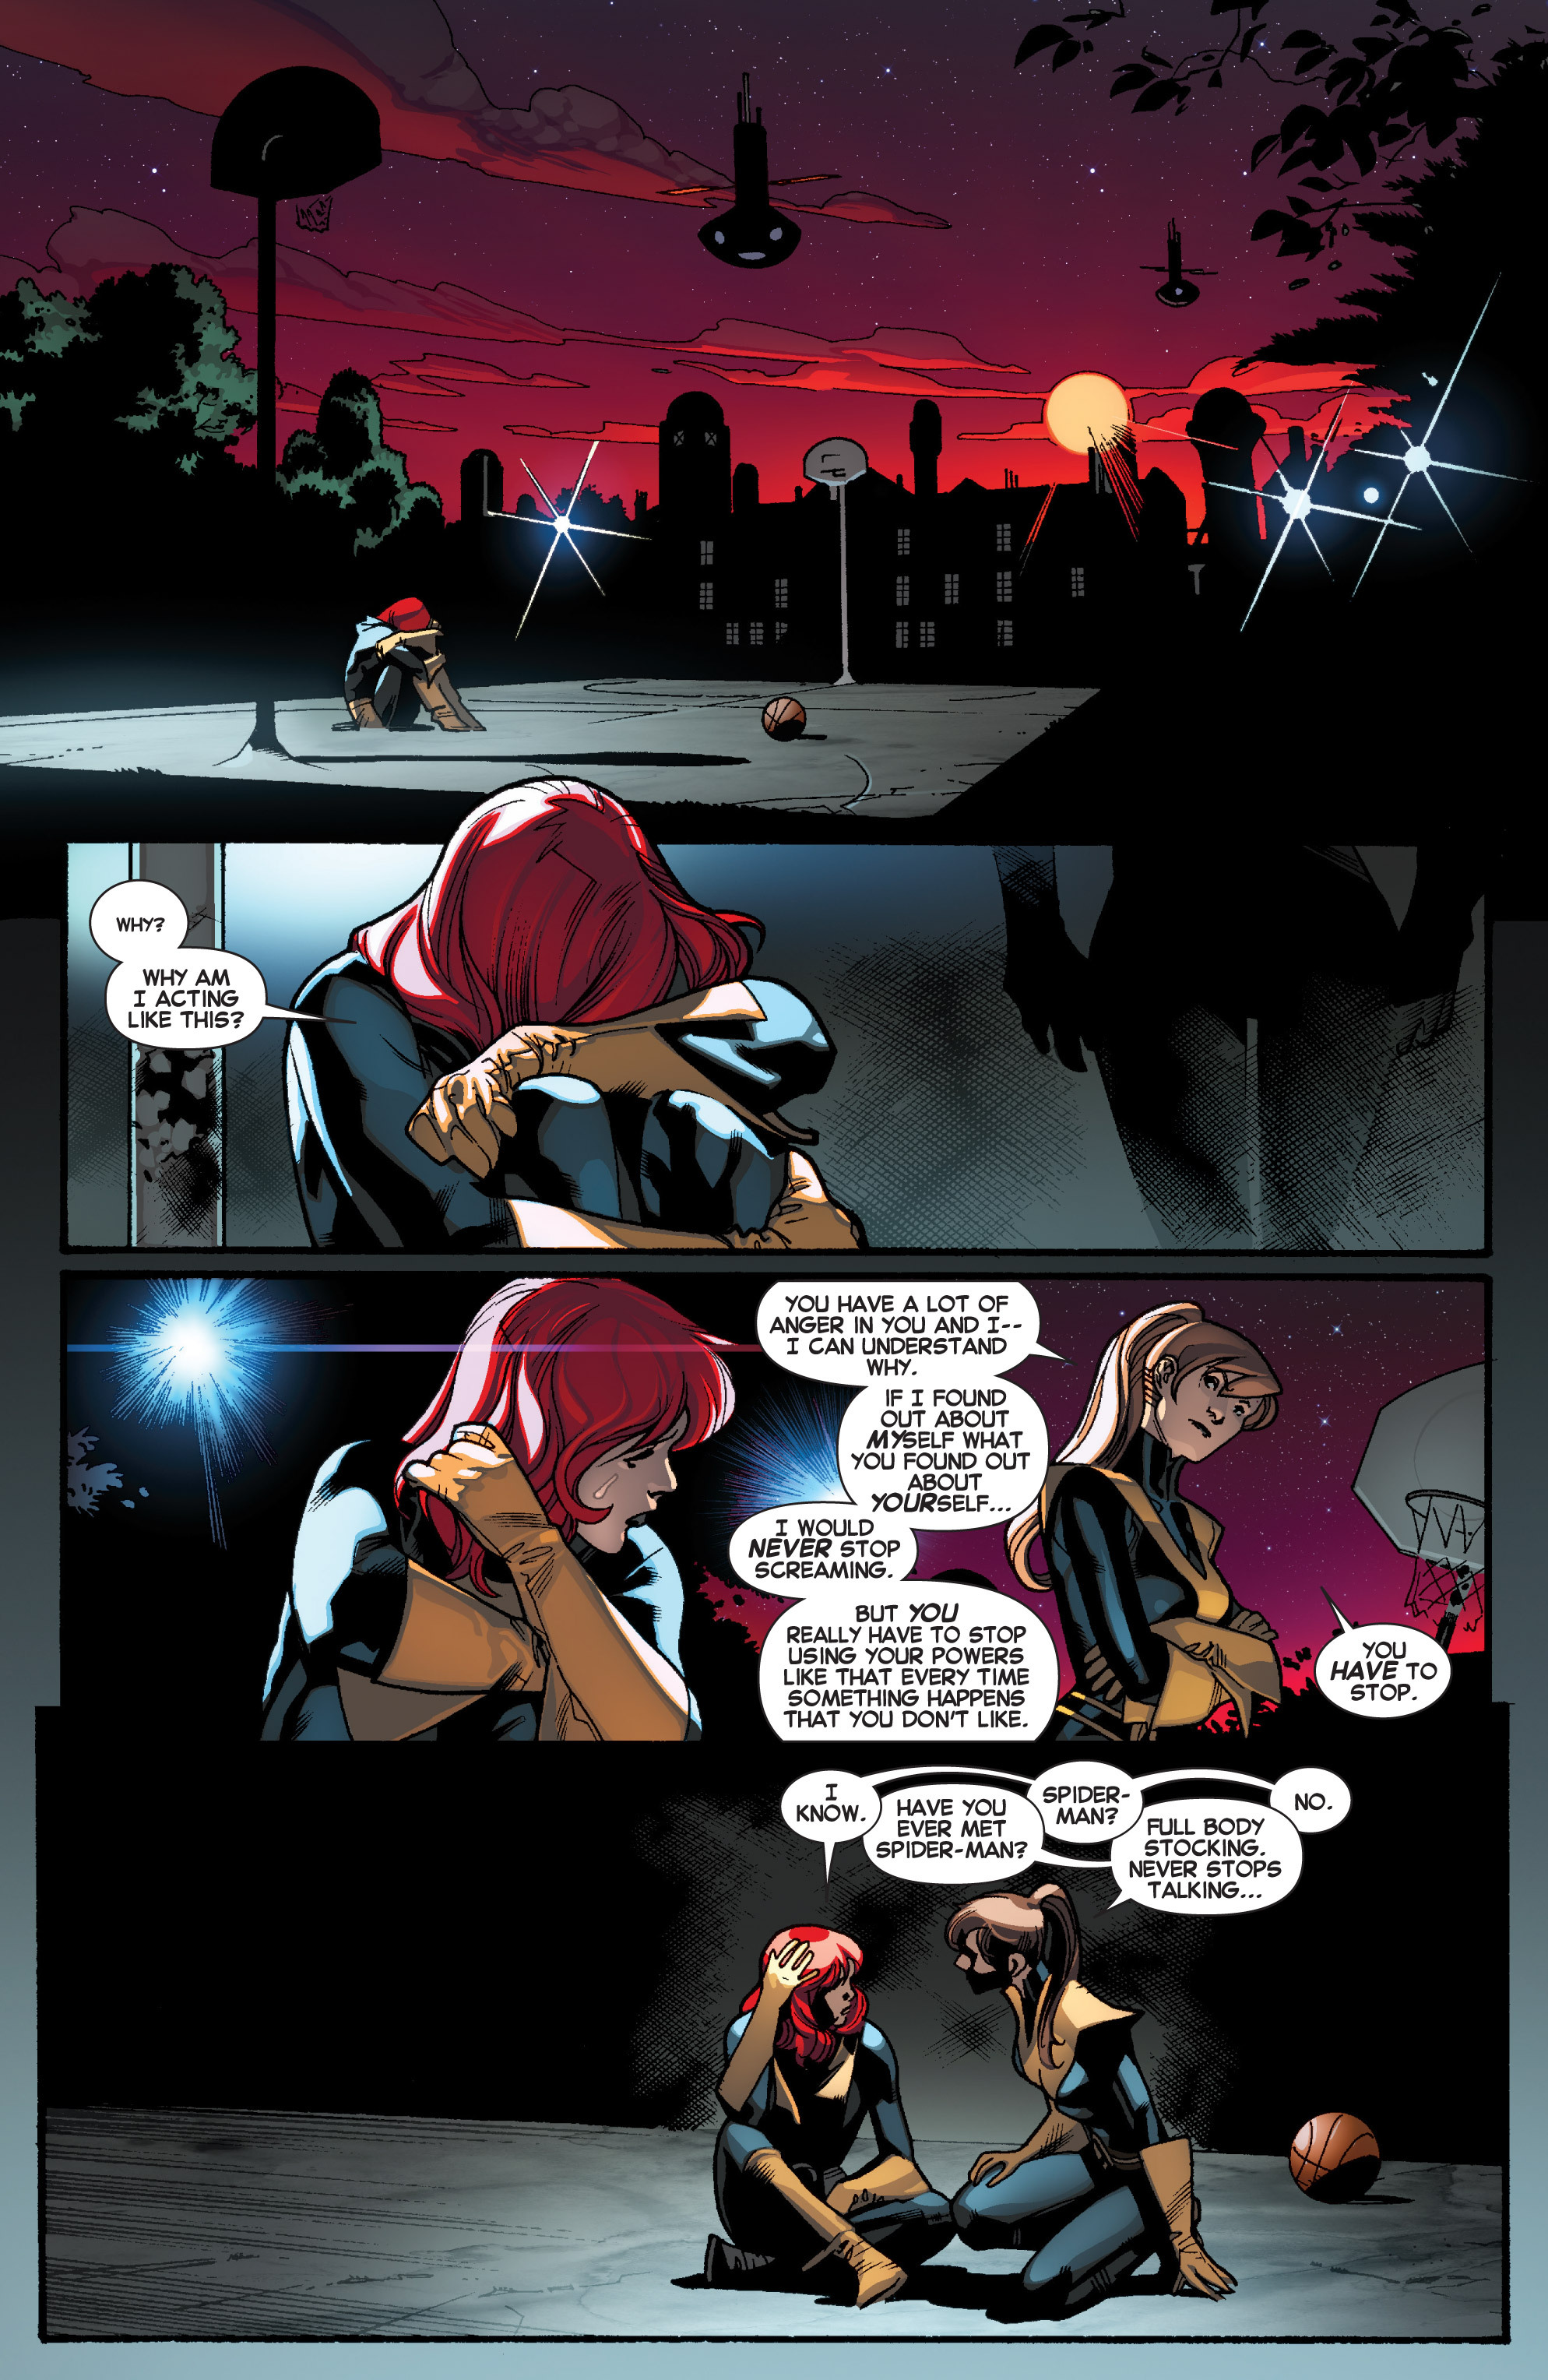 Read online All-New X-Men (2013) comic -  Issue # _Special - Out Of Their Depth - 19